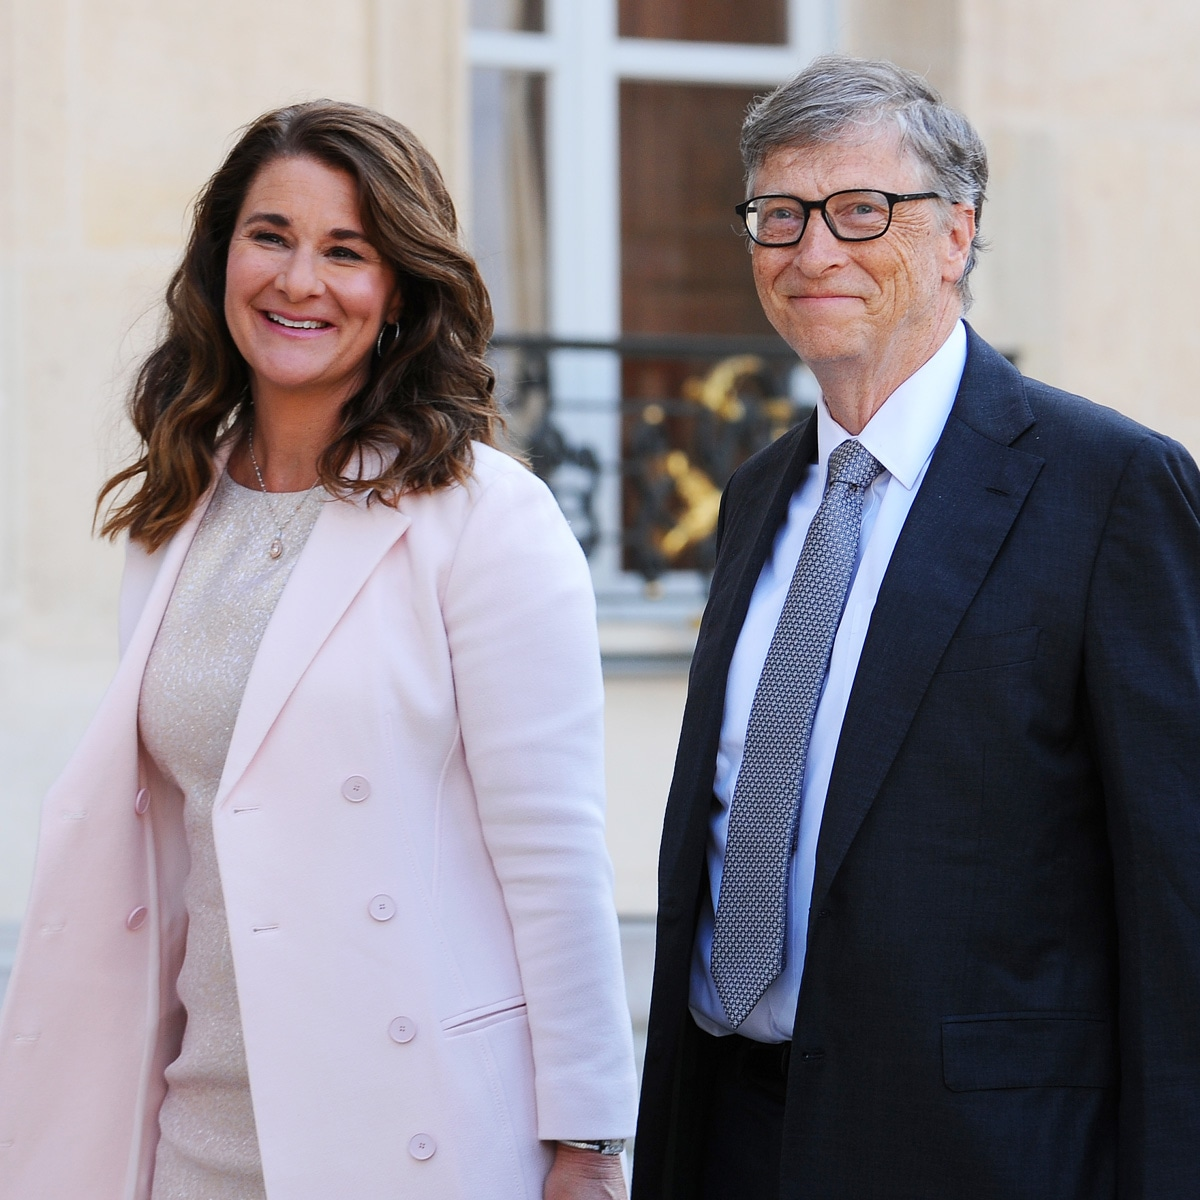 Bill Gates and Melinda Gates Break Up After 27 Years of Marriage - E!  Online Deutschland